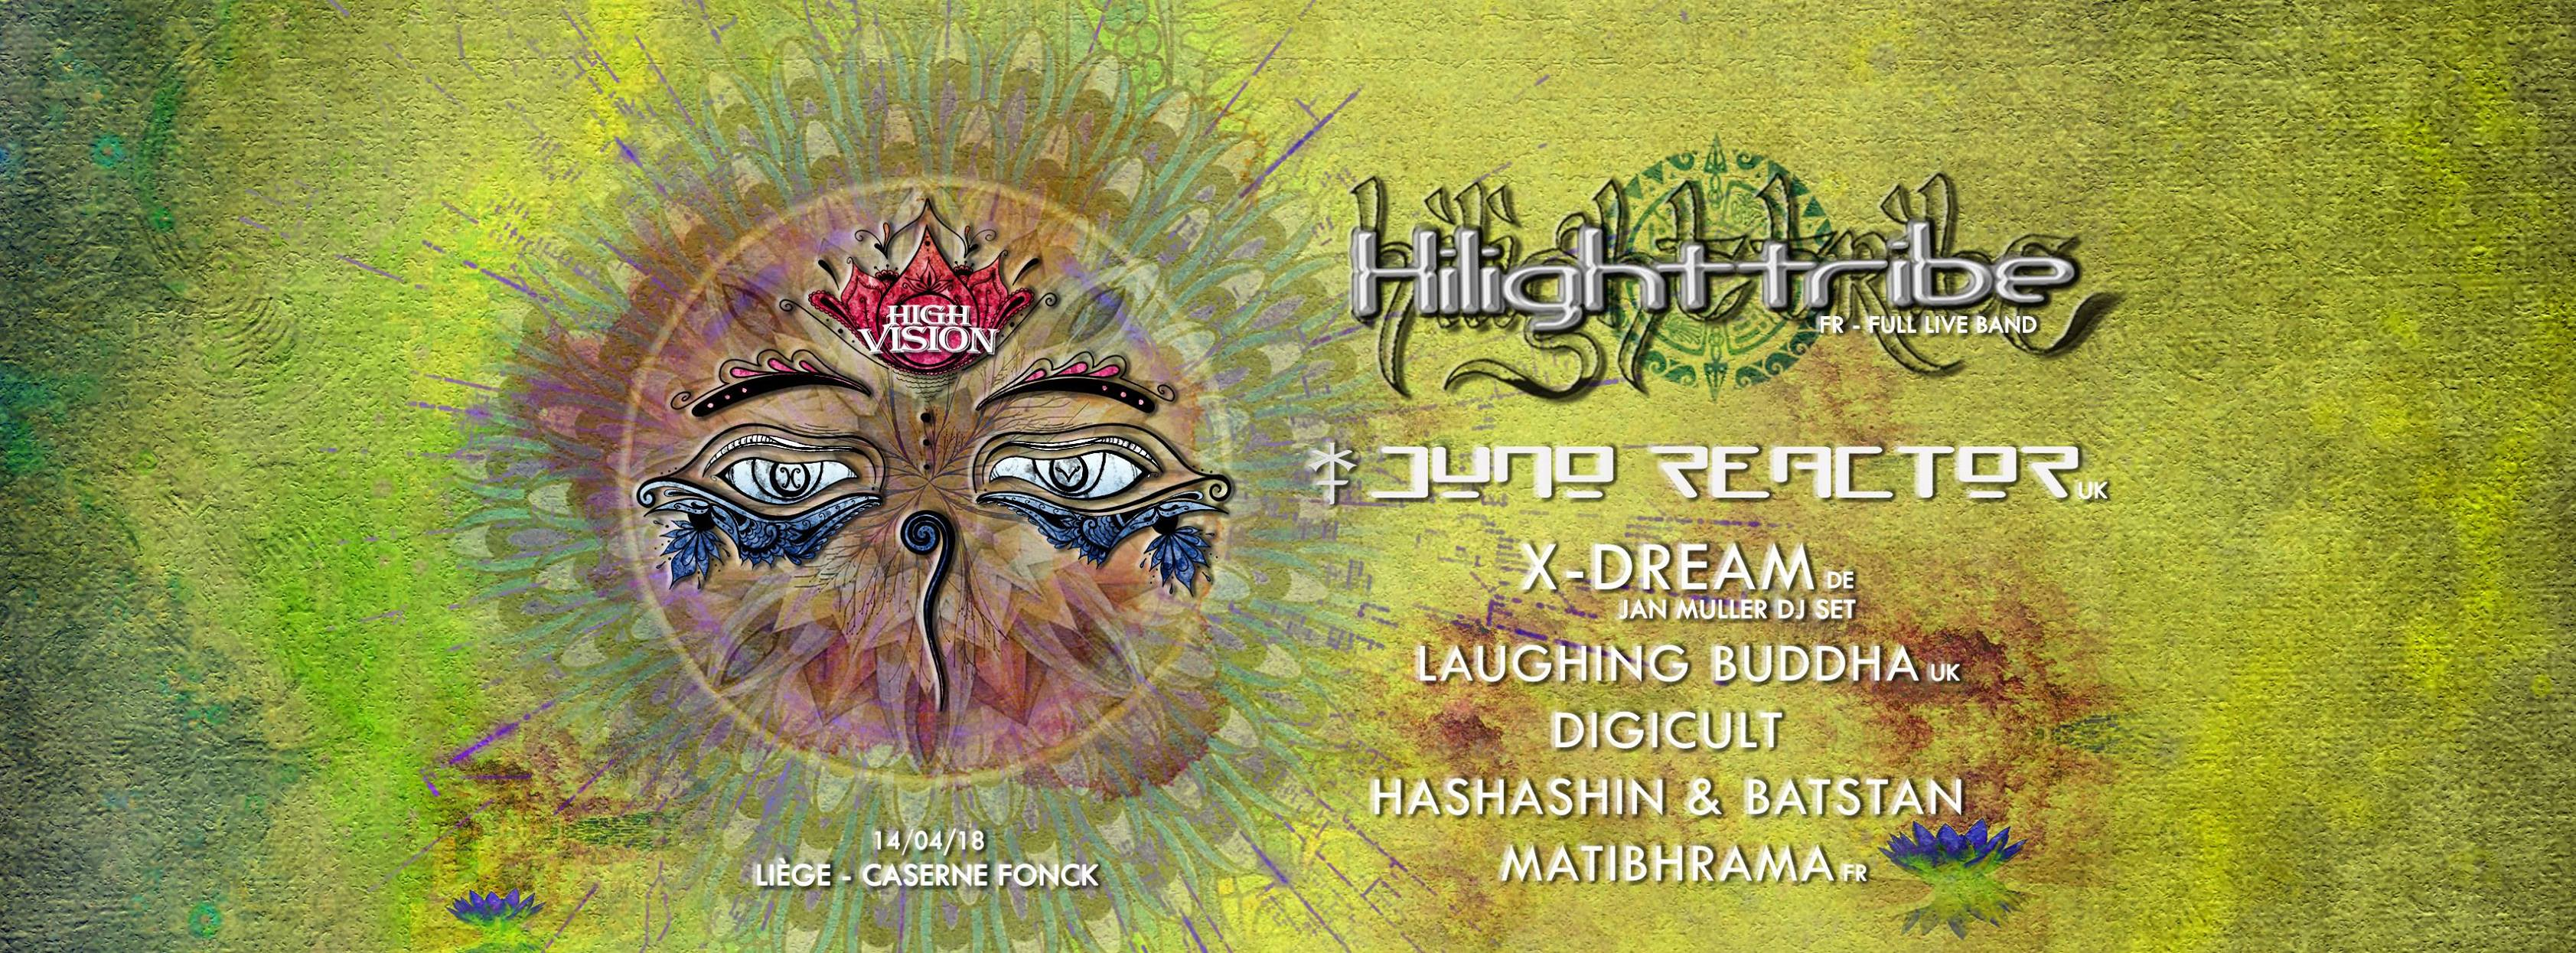 High Vision w/ Hilight Tribe, Juno Reactor